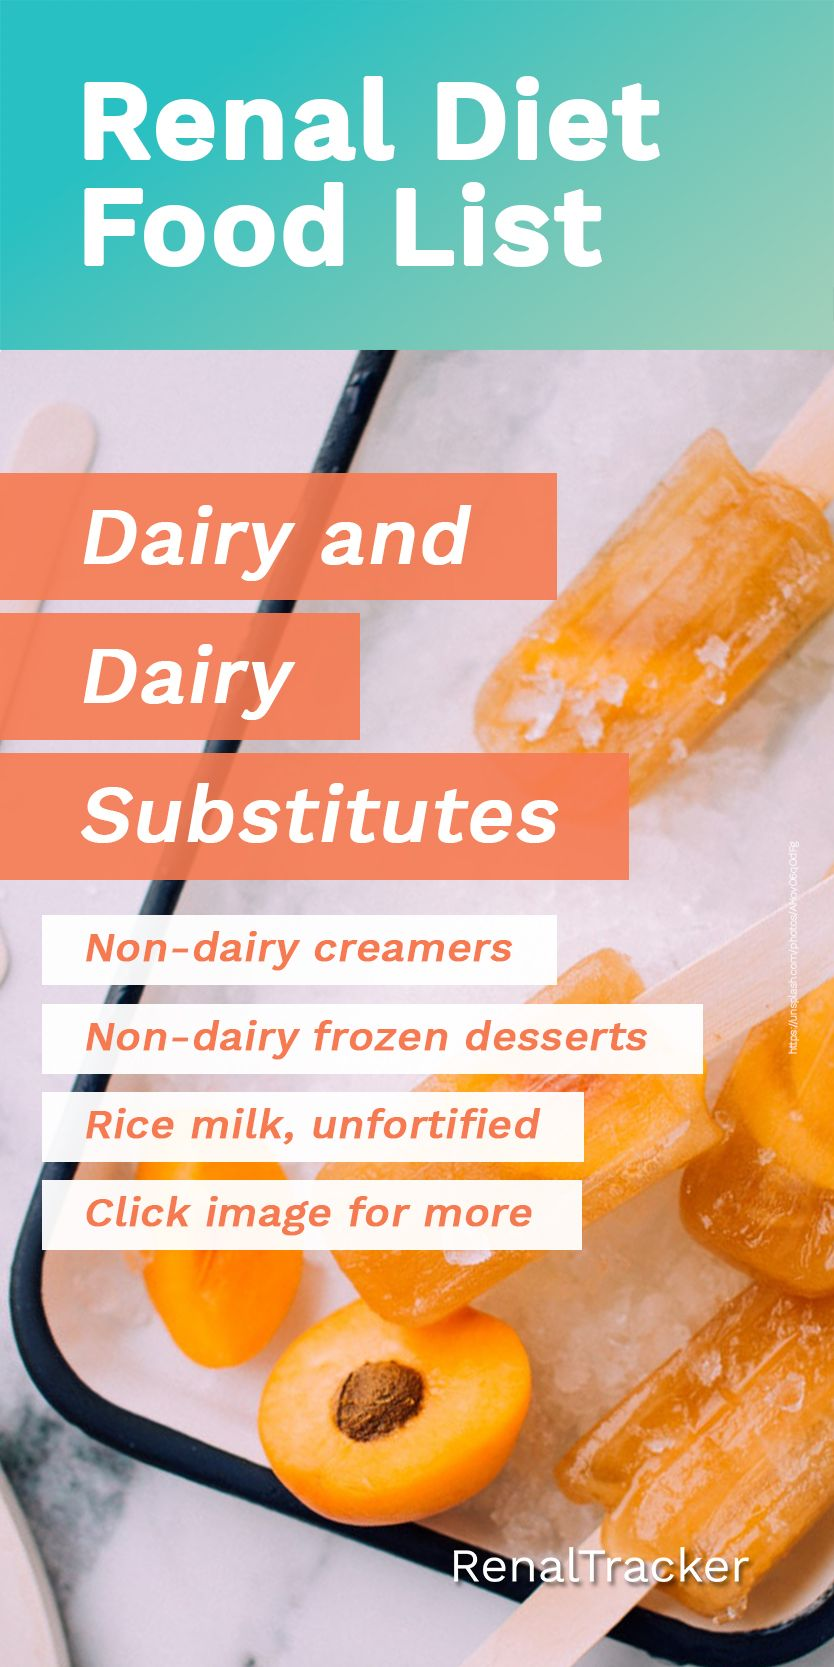 can you have dairy on a renal diet